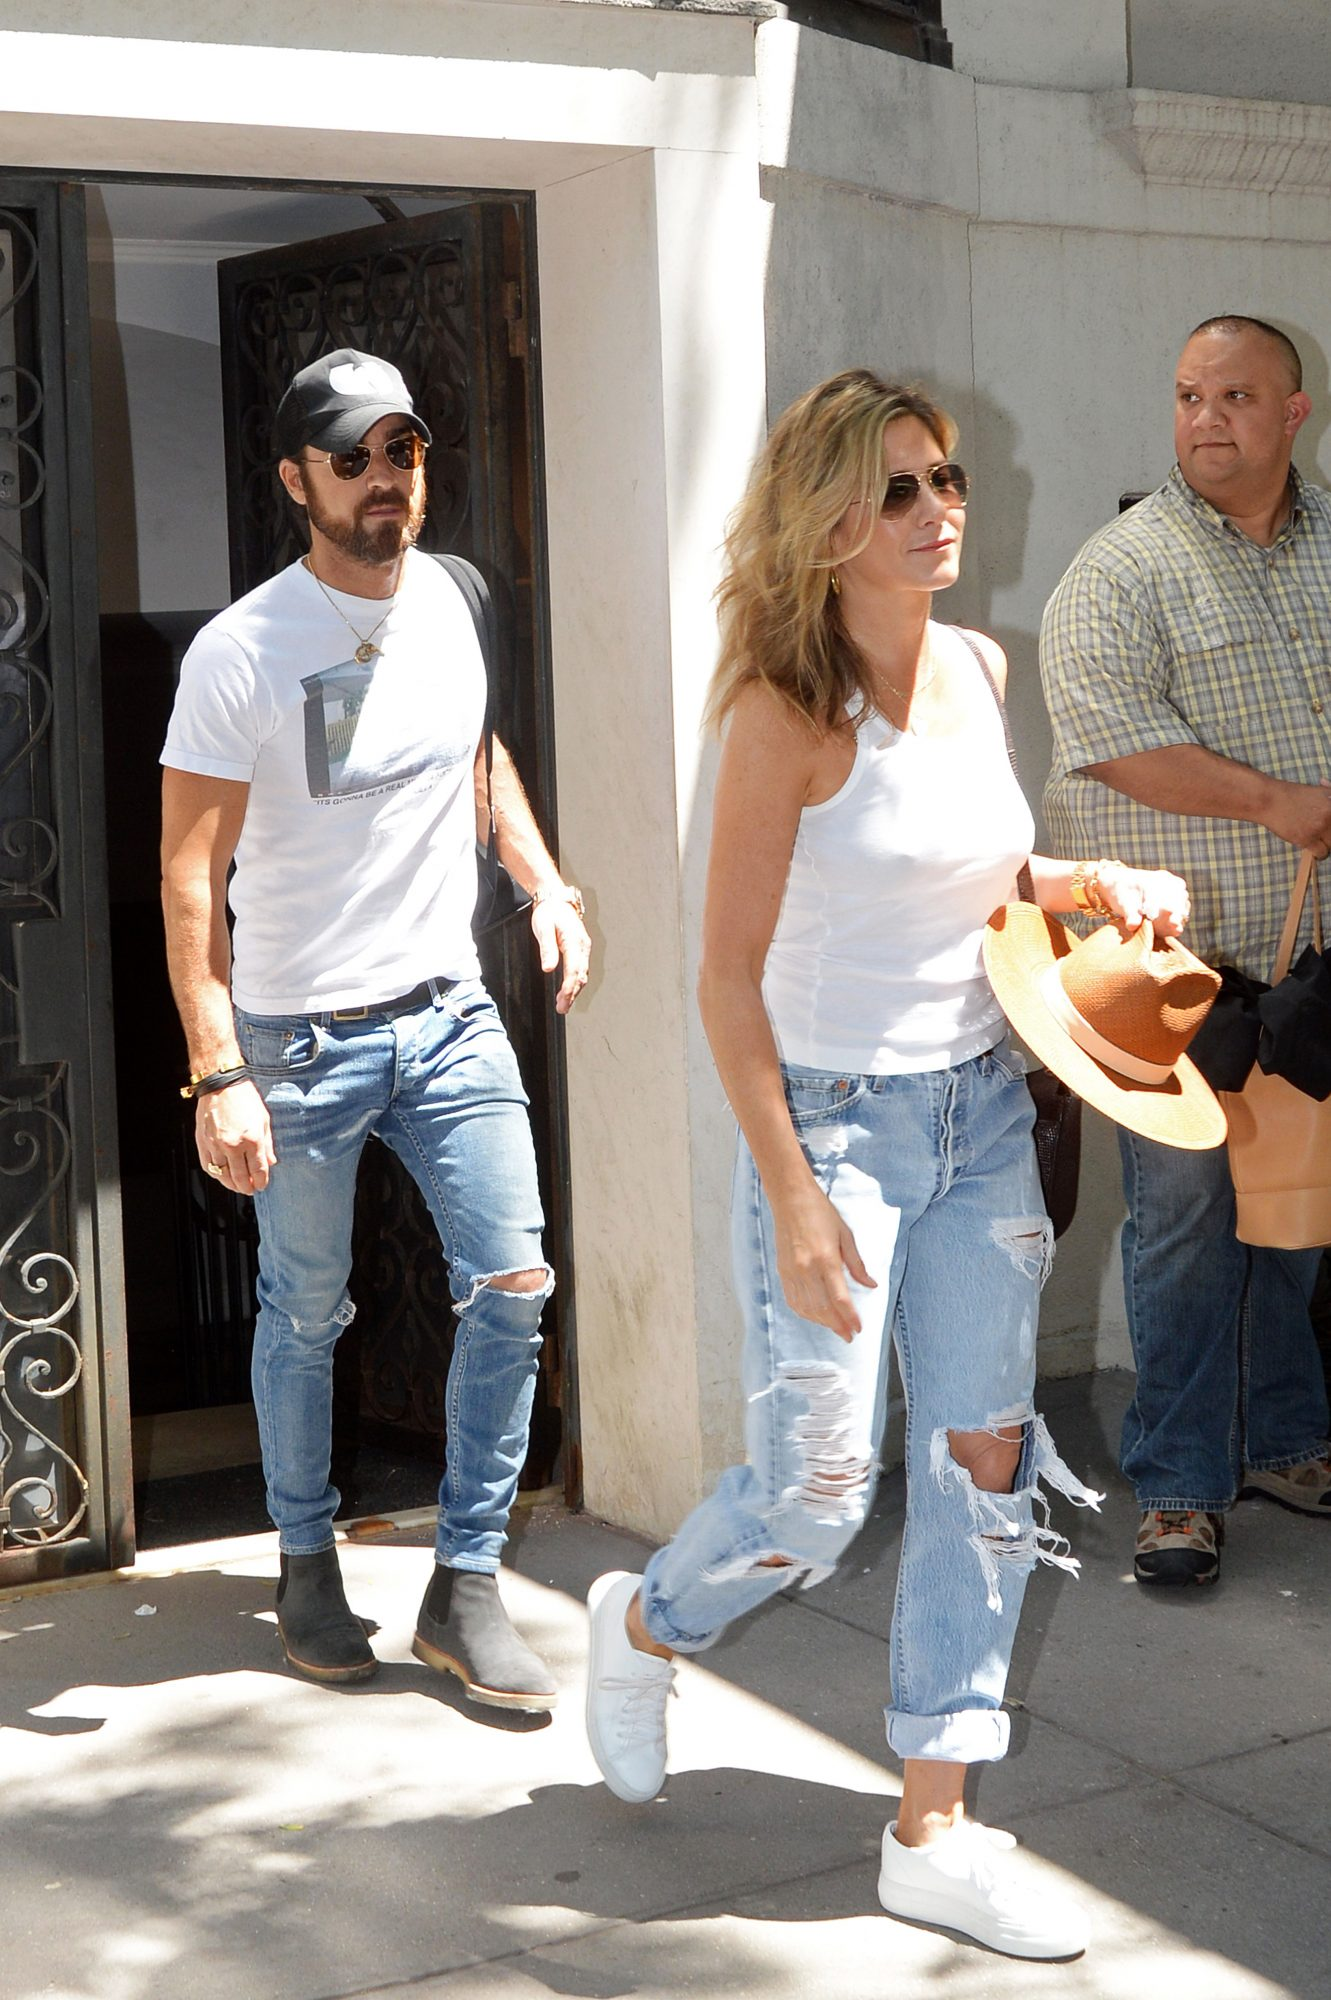 Jennifer Aniston and Justin Theroux leave their New York apartment for a trip to the airport.